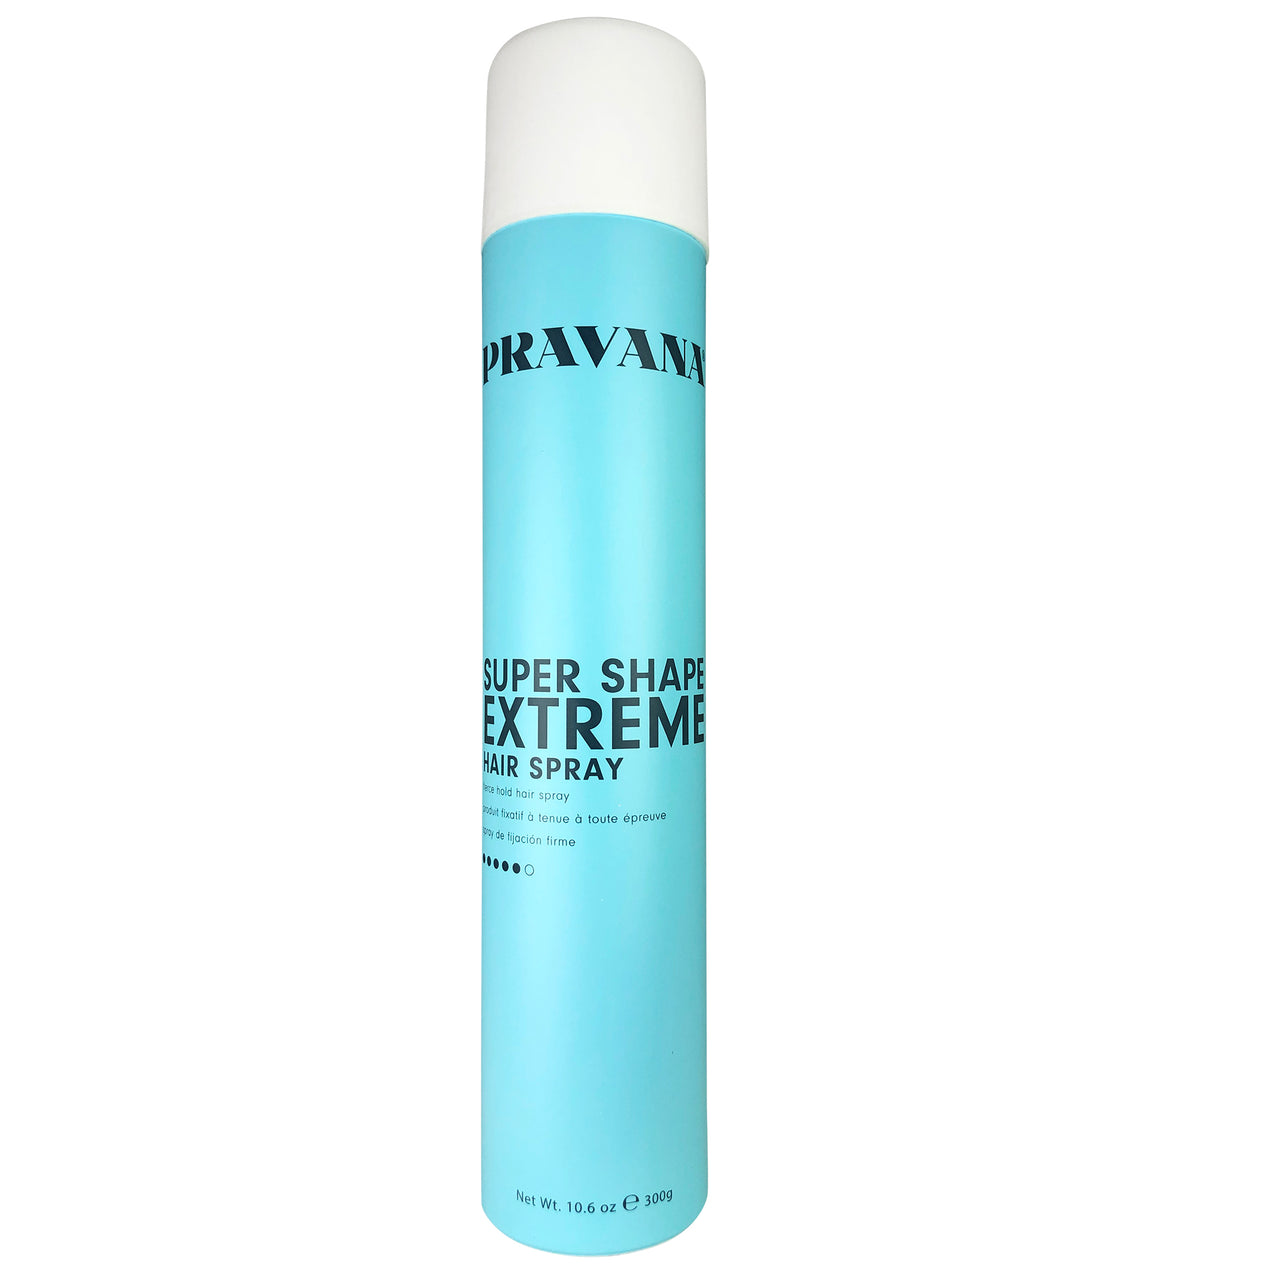 Pravana Super Shape Extreme Hair Spray 10.6 oz